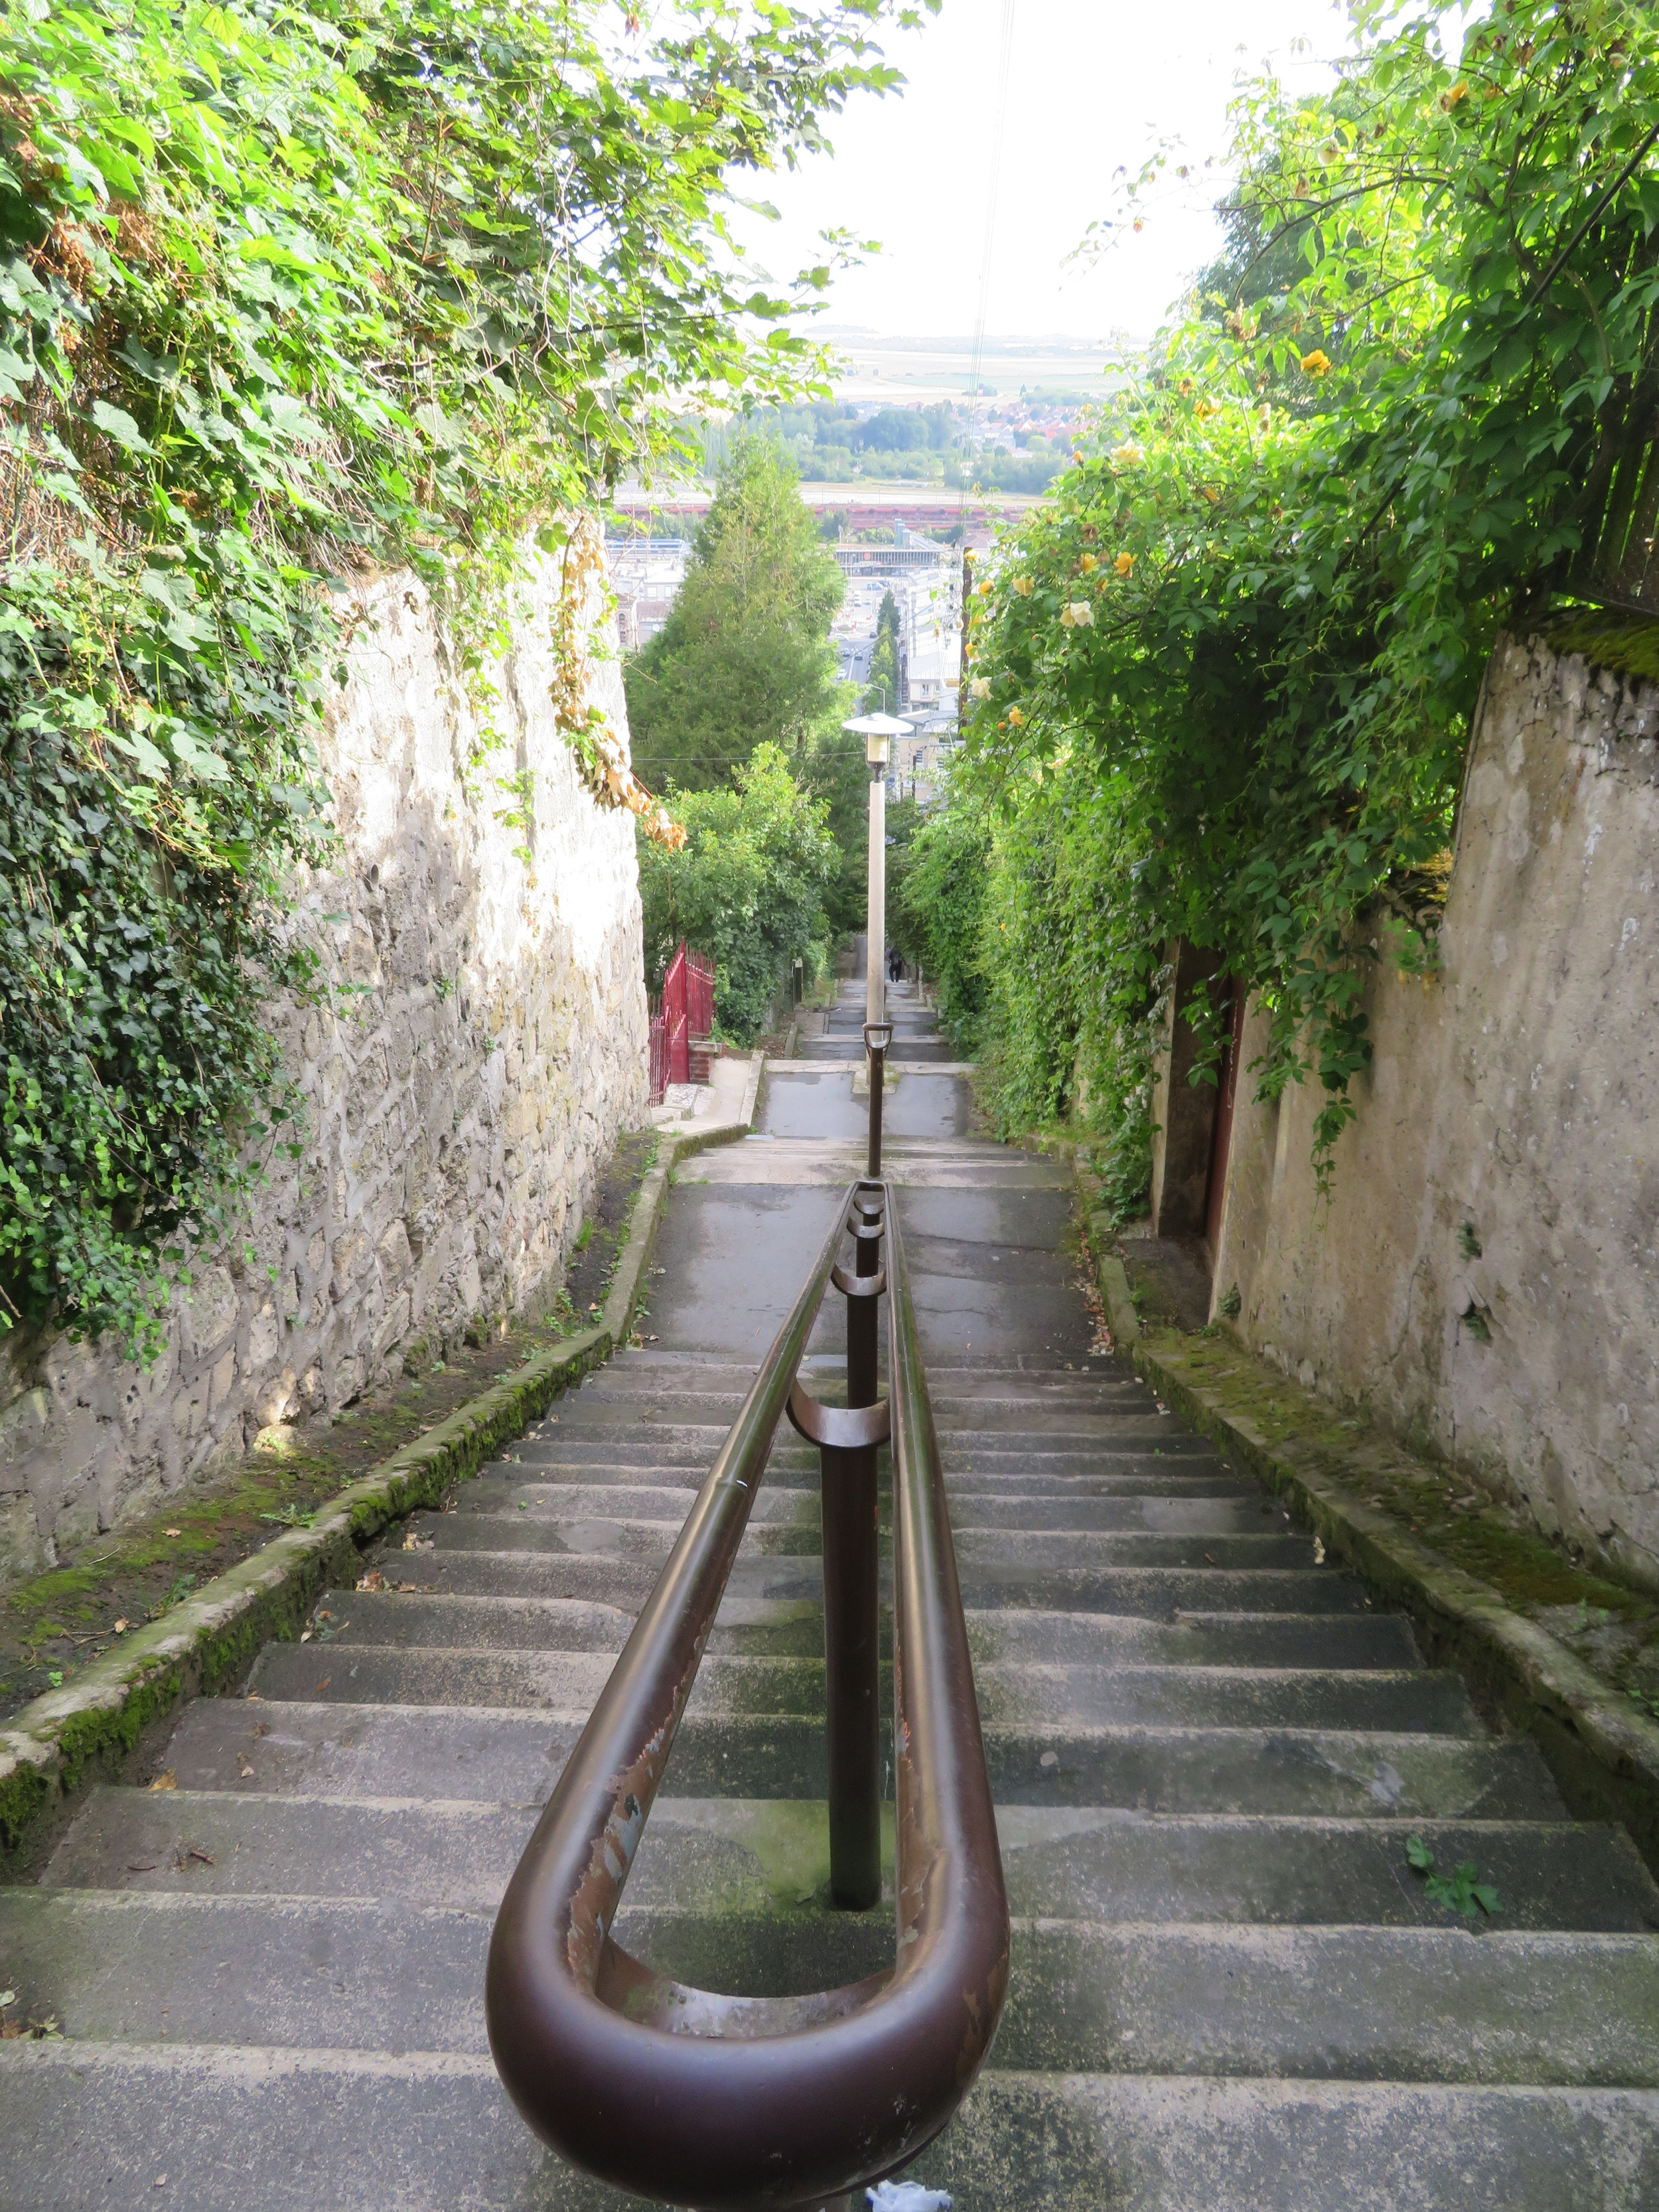 Lots of stairs to climb up to Laon's old city … always looks easier when you're looking down!